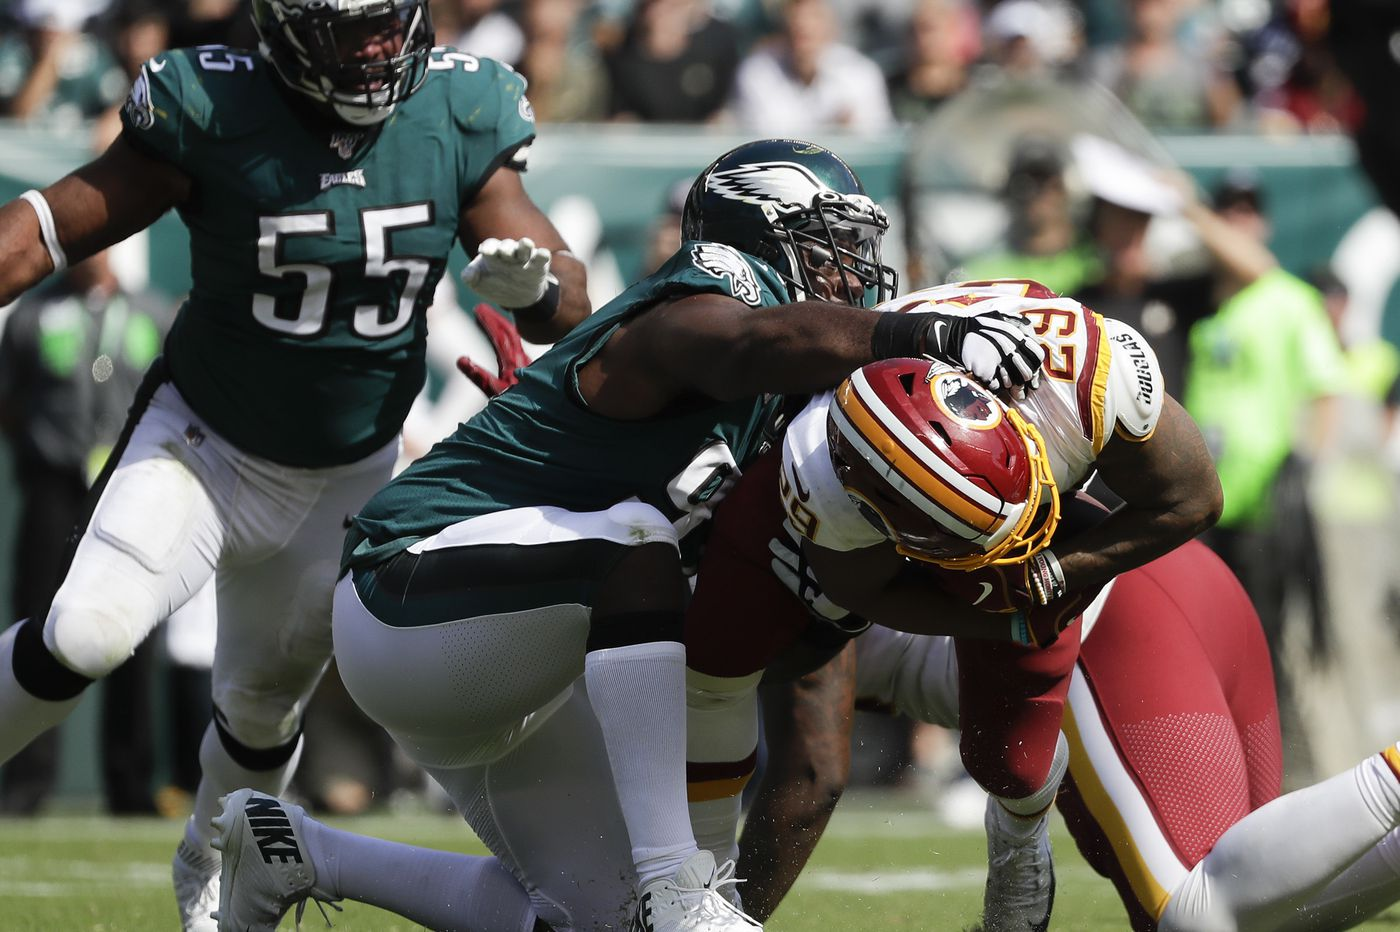 Eagles, like Patriots, creating a winning culture with extra